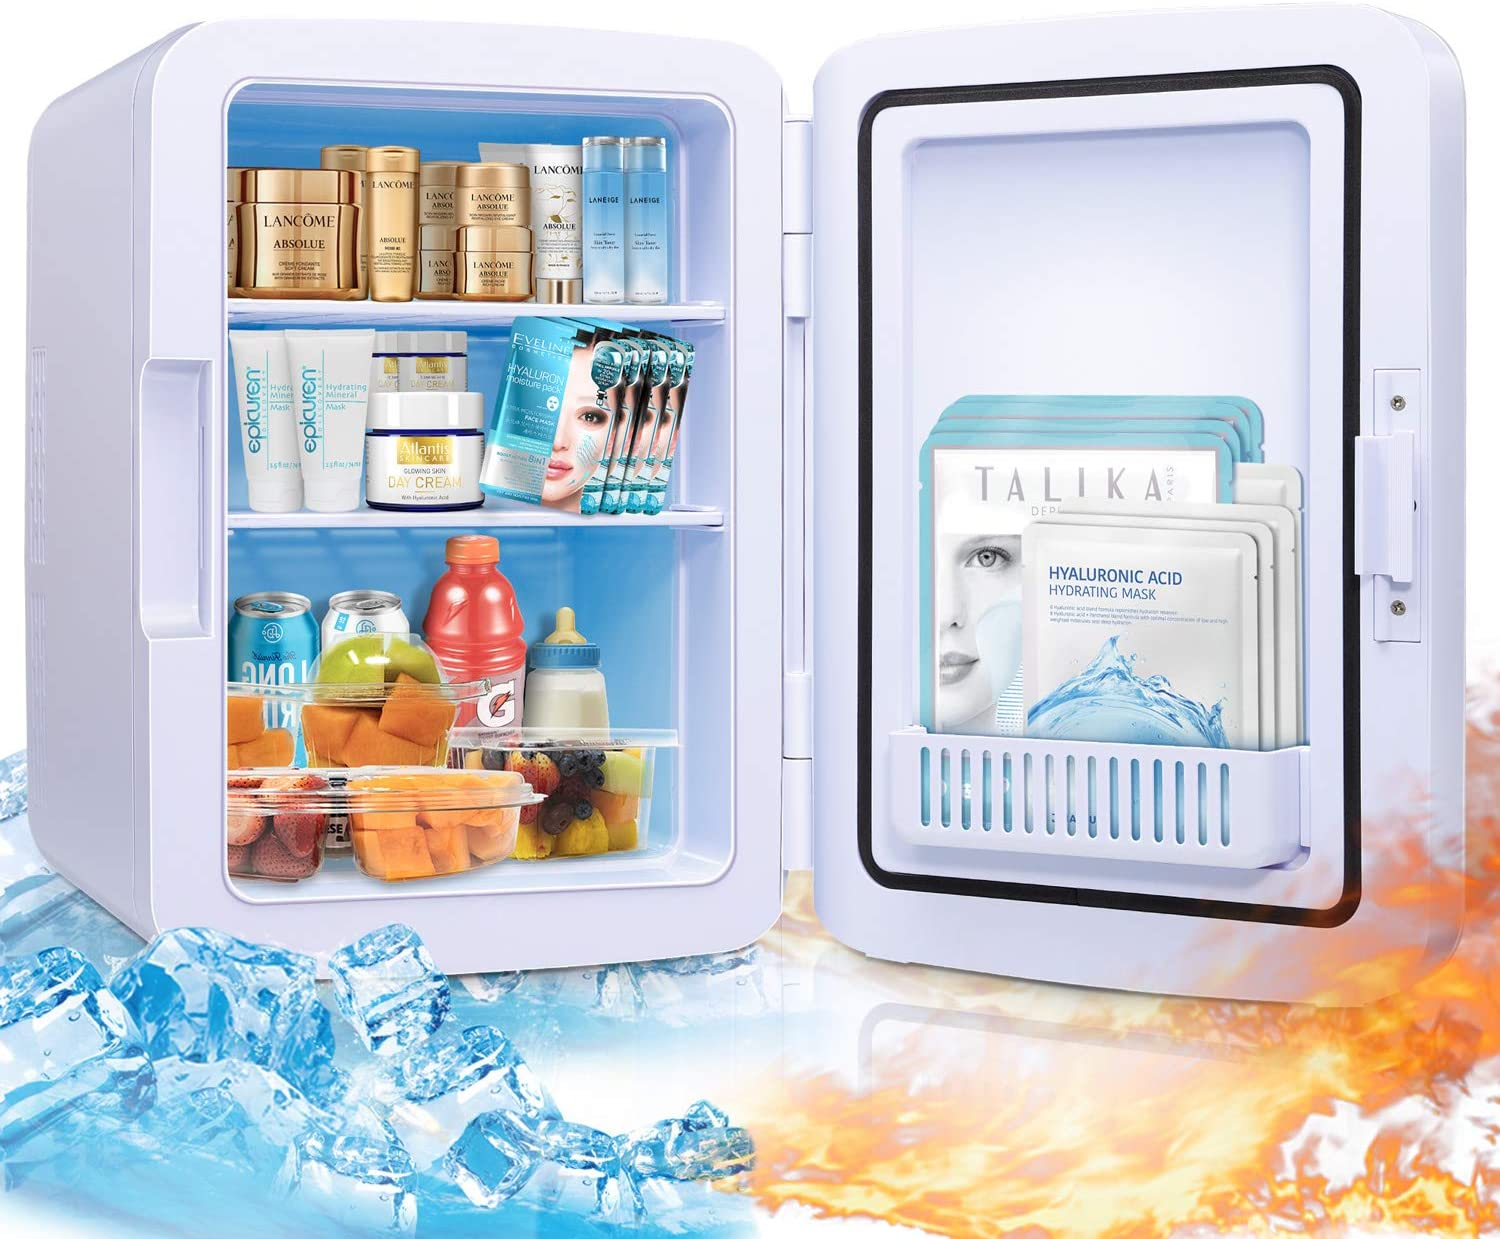 Firares Rapid Cooling 10 Liter/12 Can Mini Fridge for Bedroom Portable Skincare Makeup Fridge Cooler and Warmer Storage for Skincare, Snacks, Foods, Medications, Suit Bedroom Office Car Travel (White)